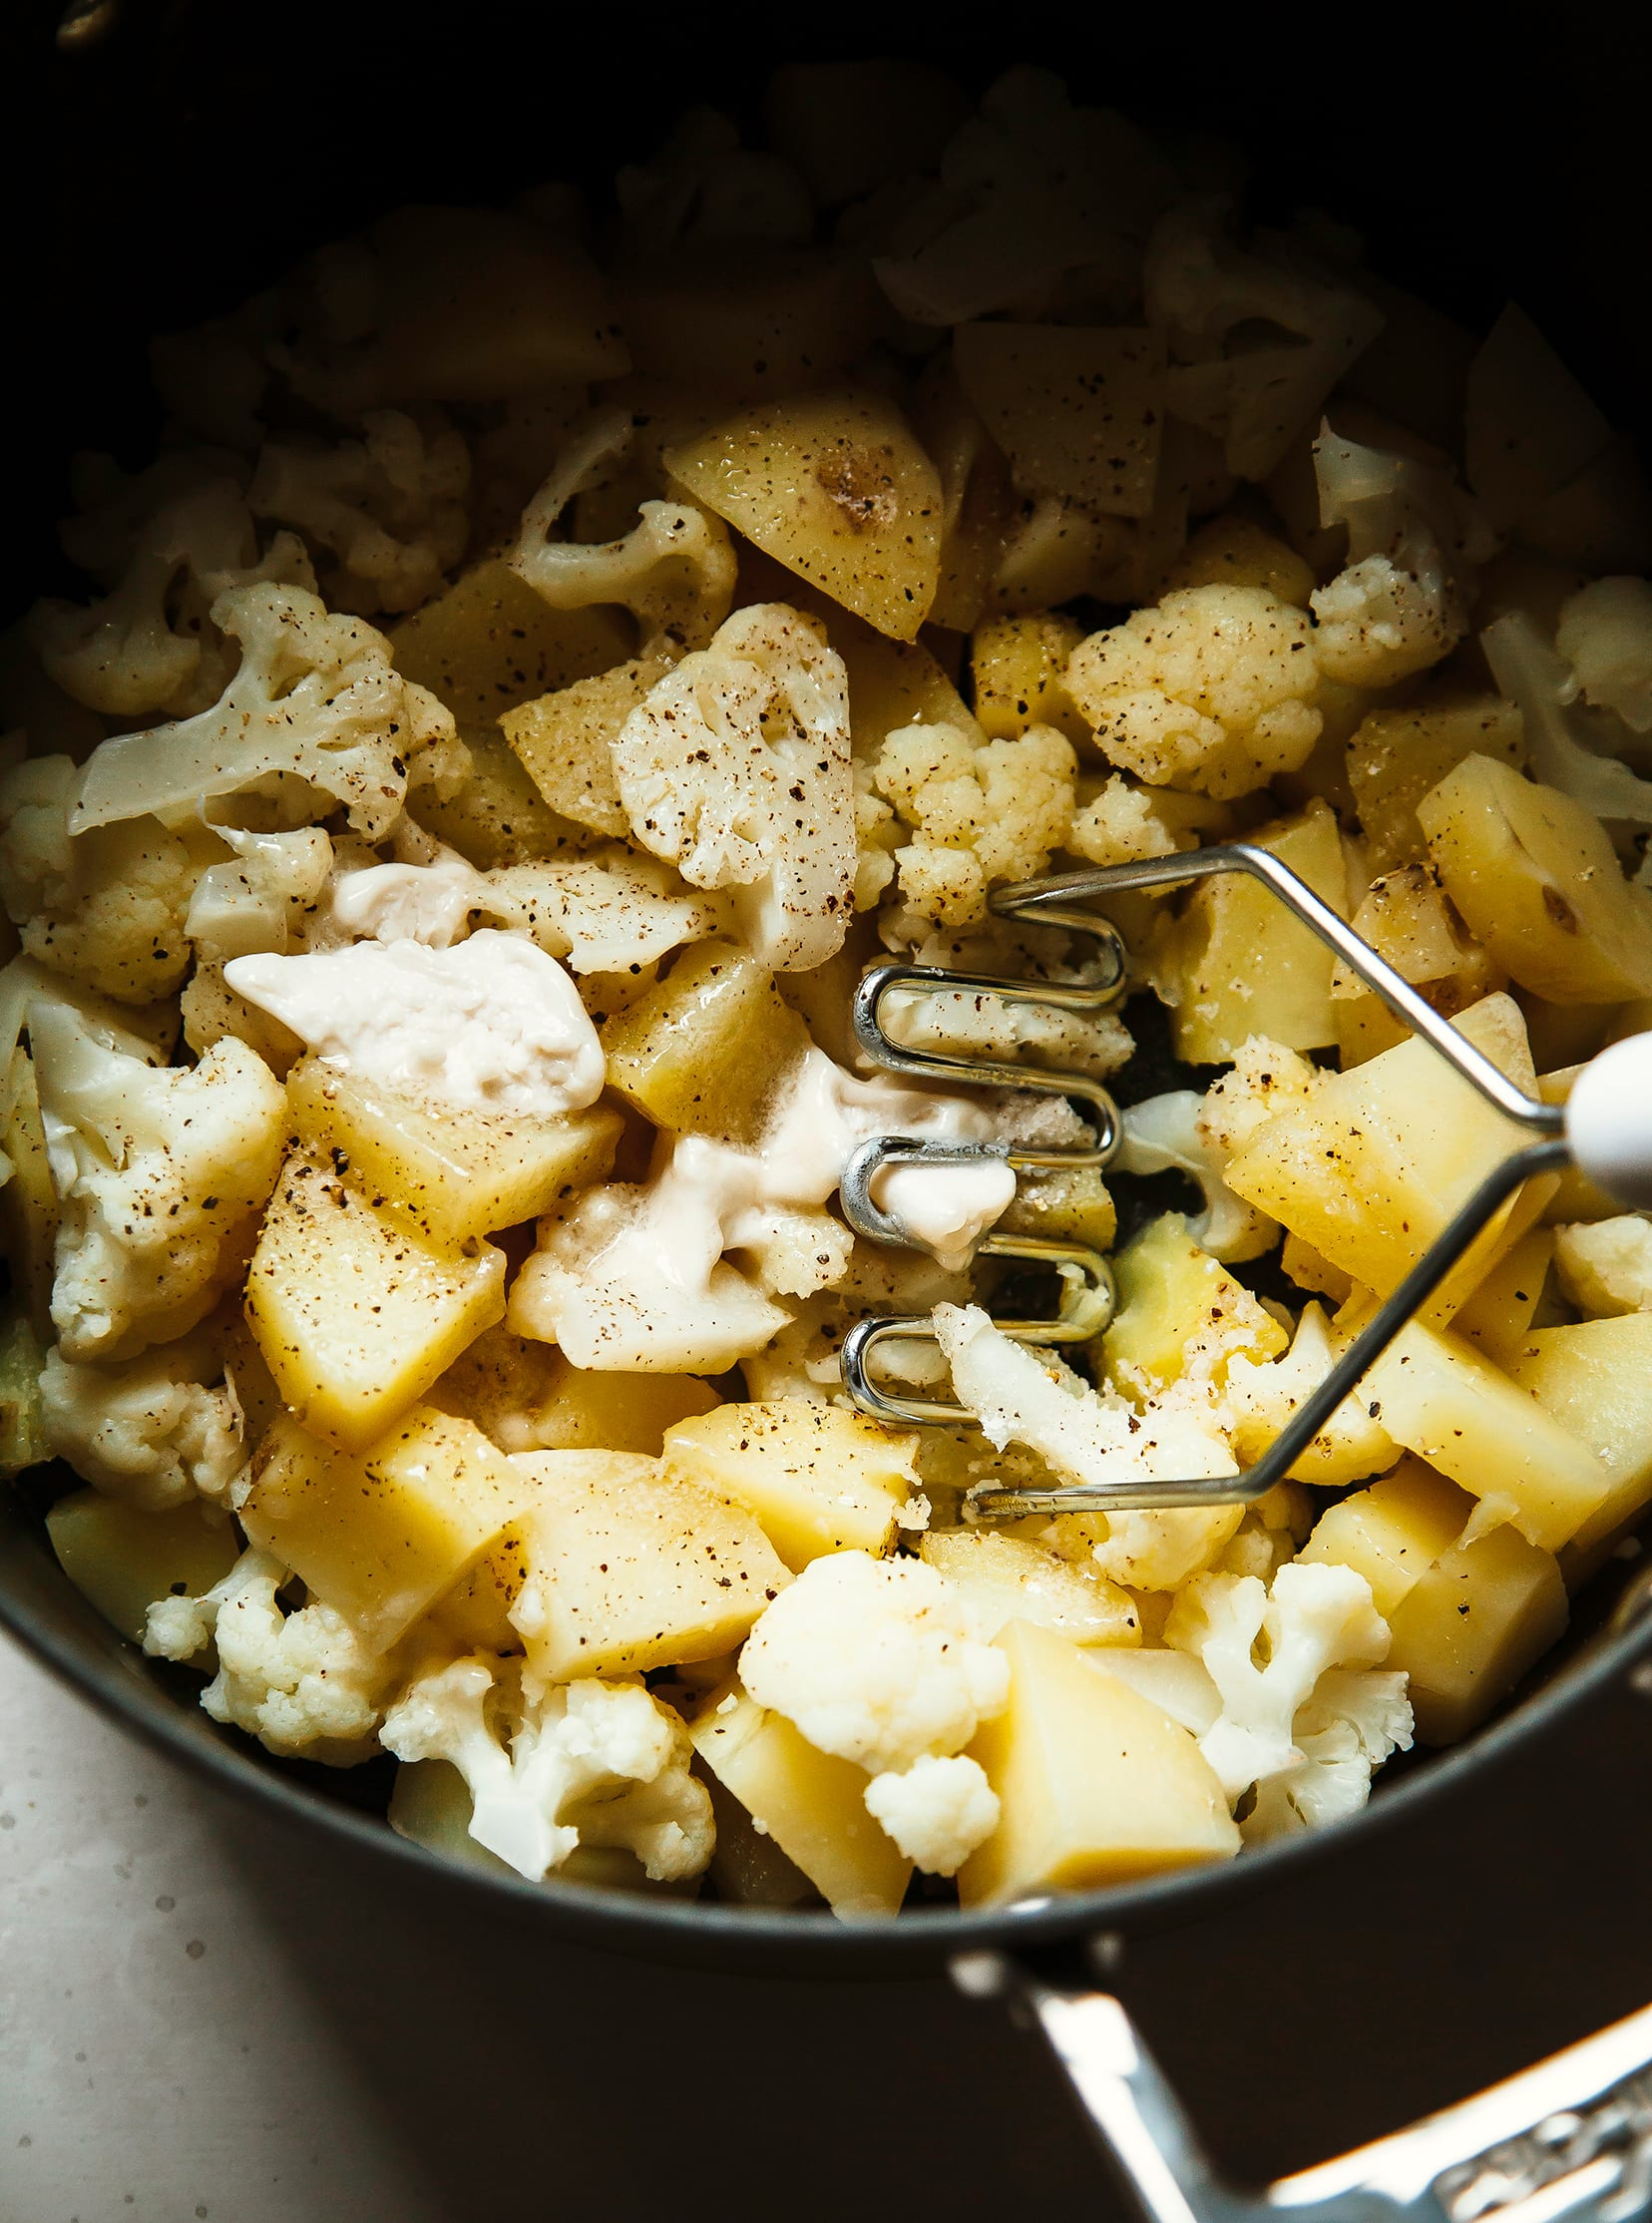 Cooked potatoes and cauliflower are being mashed with vegan butter.